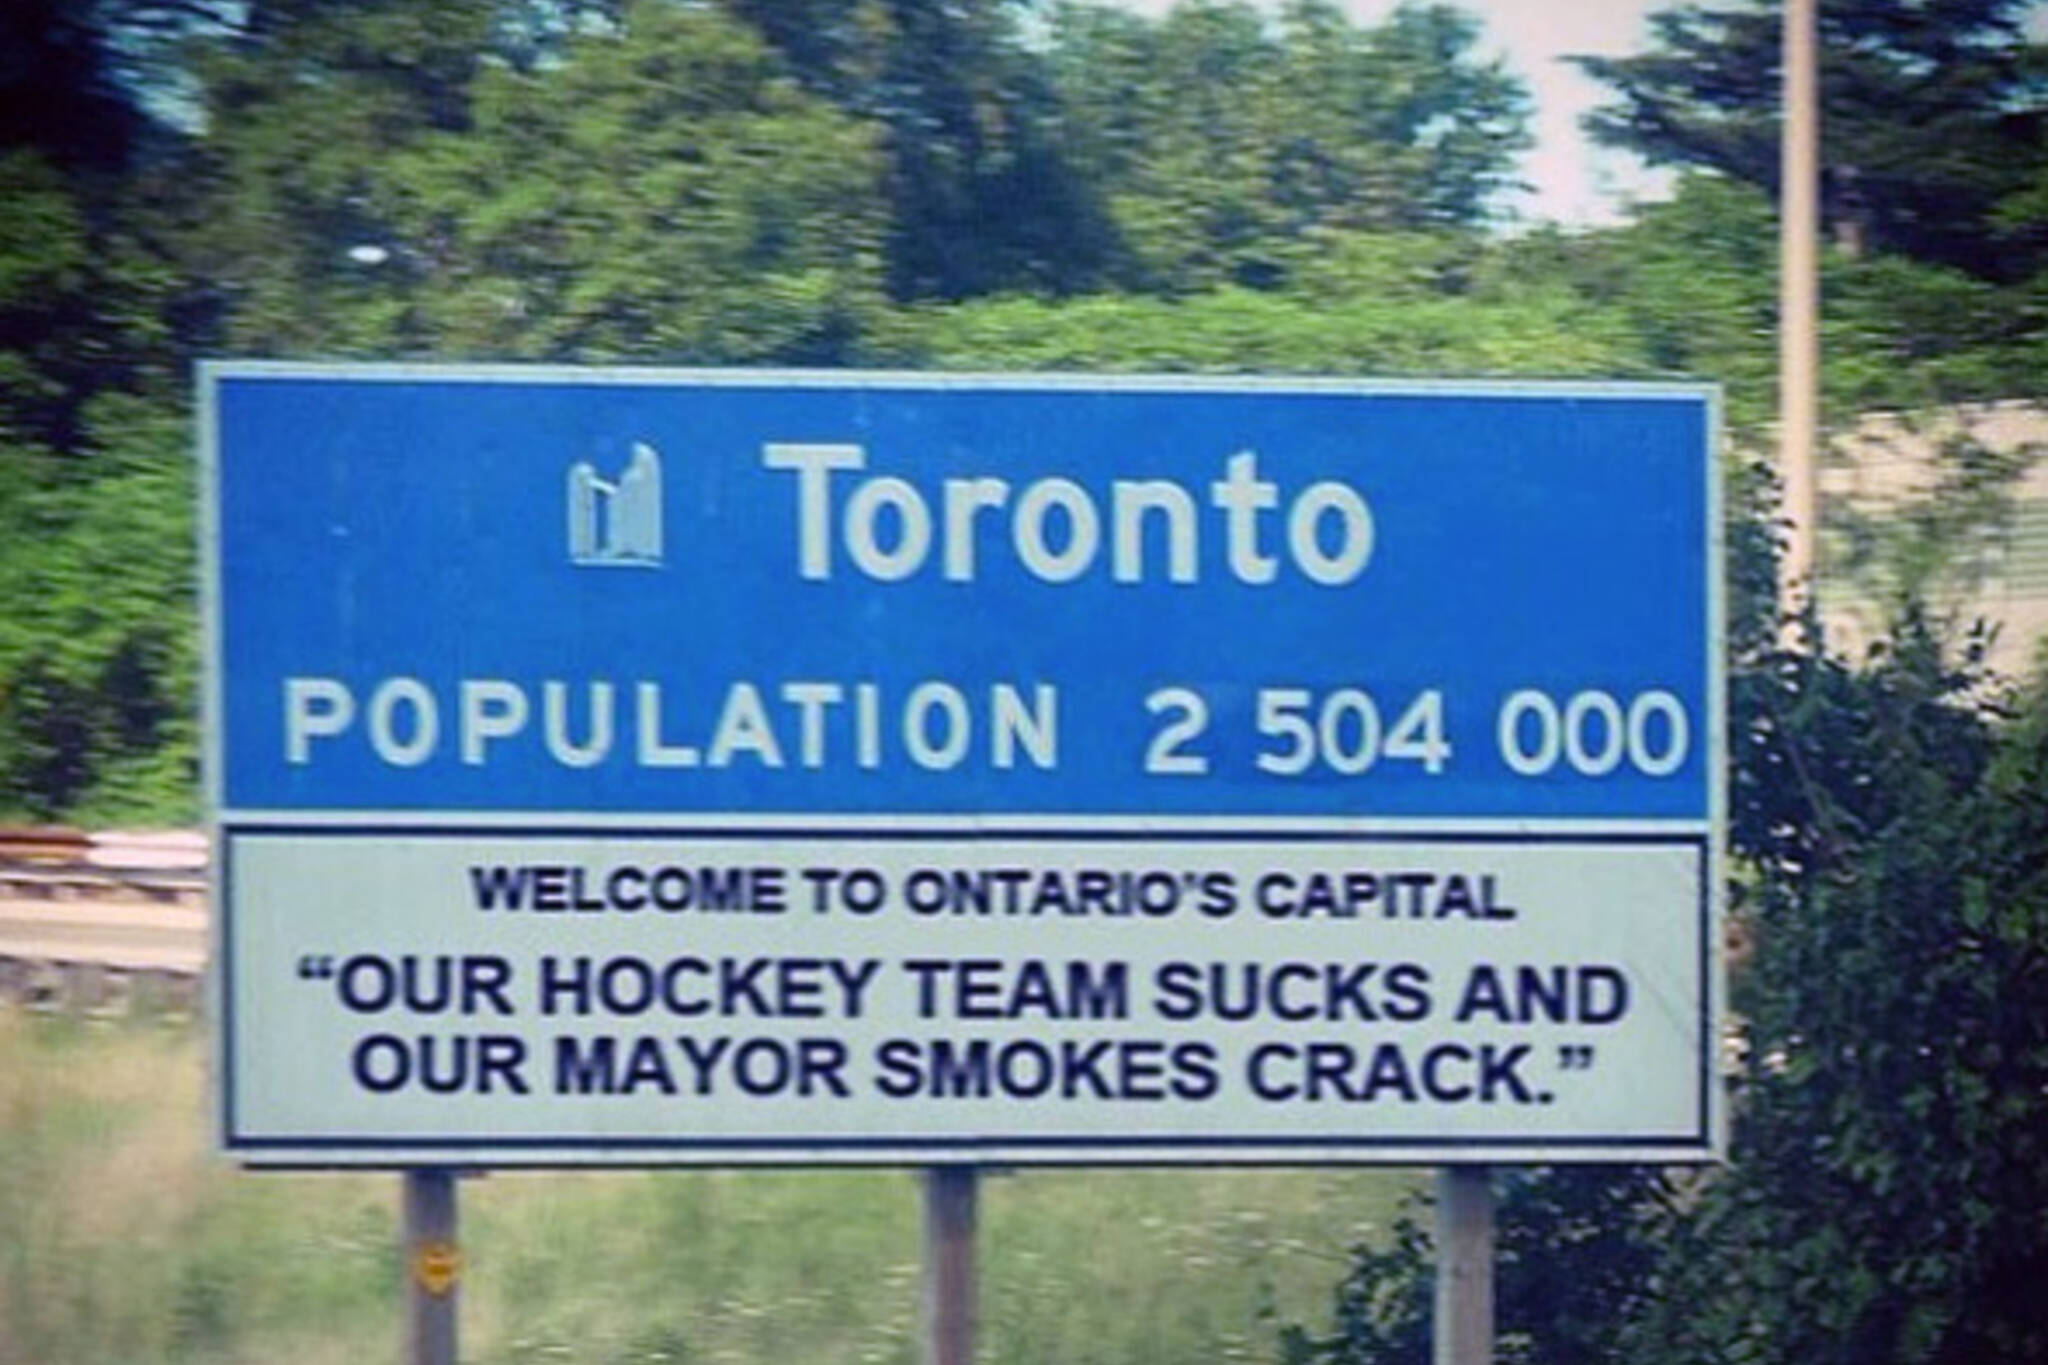 Toronto famous mayor crack